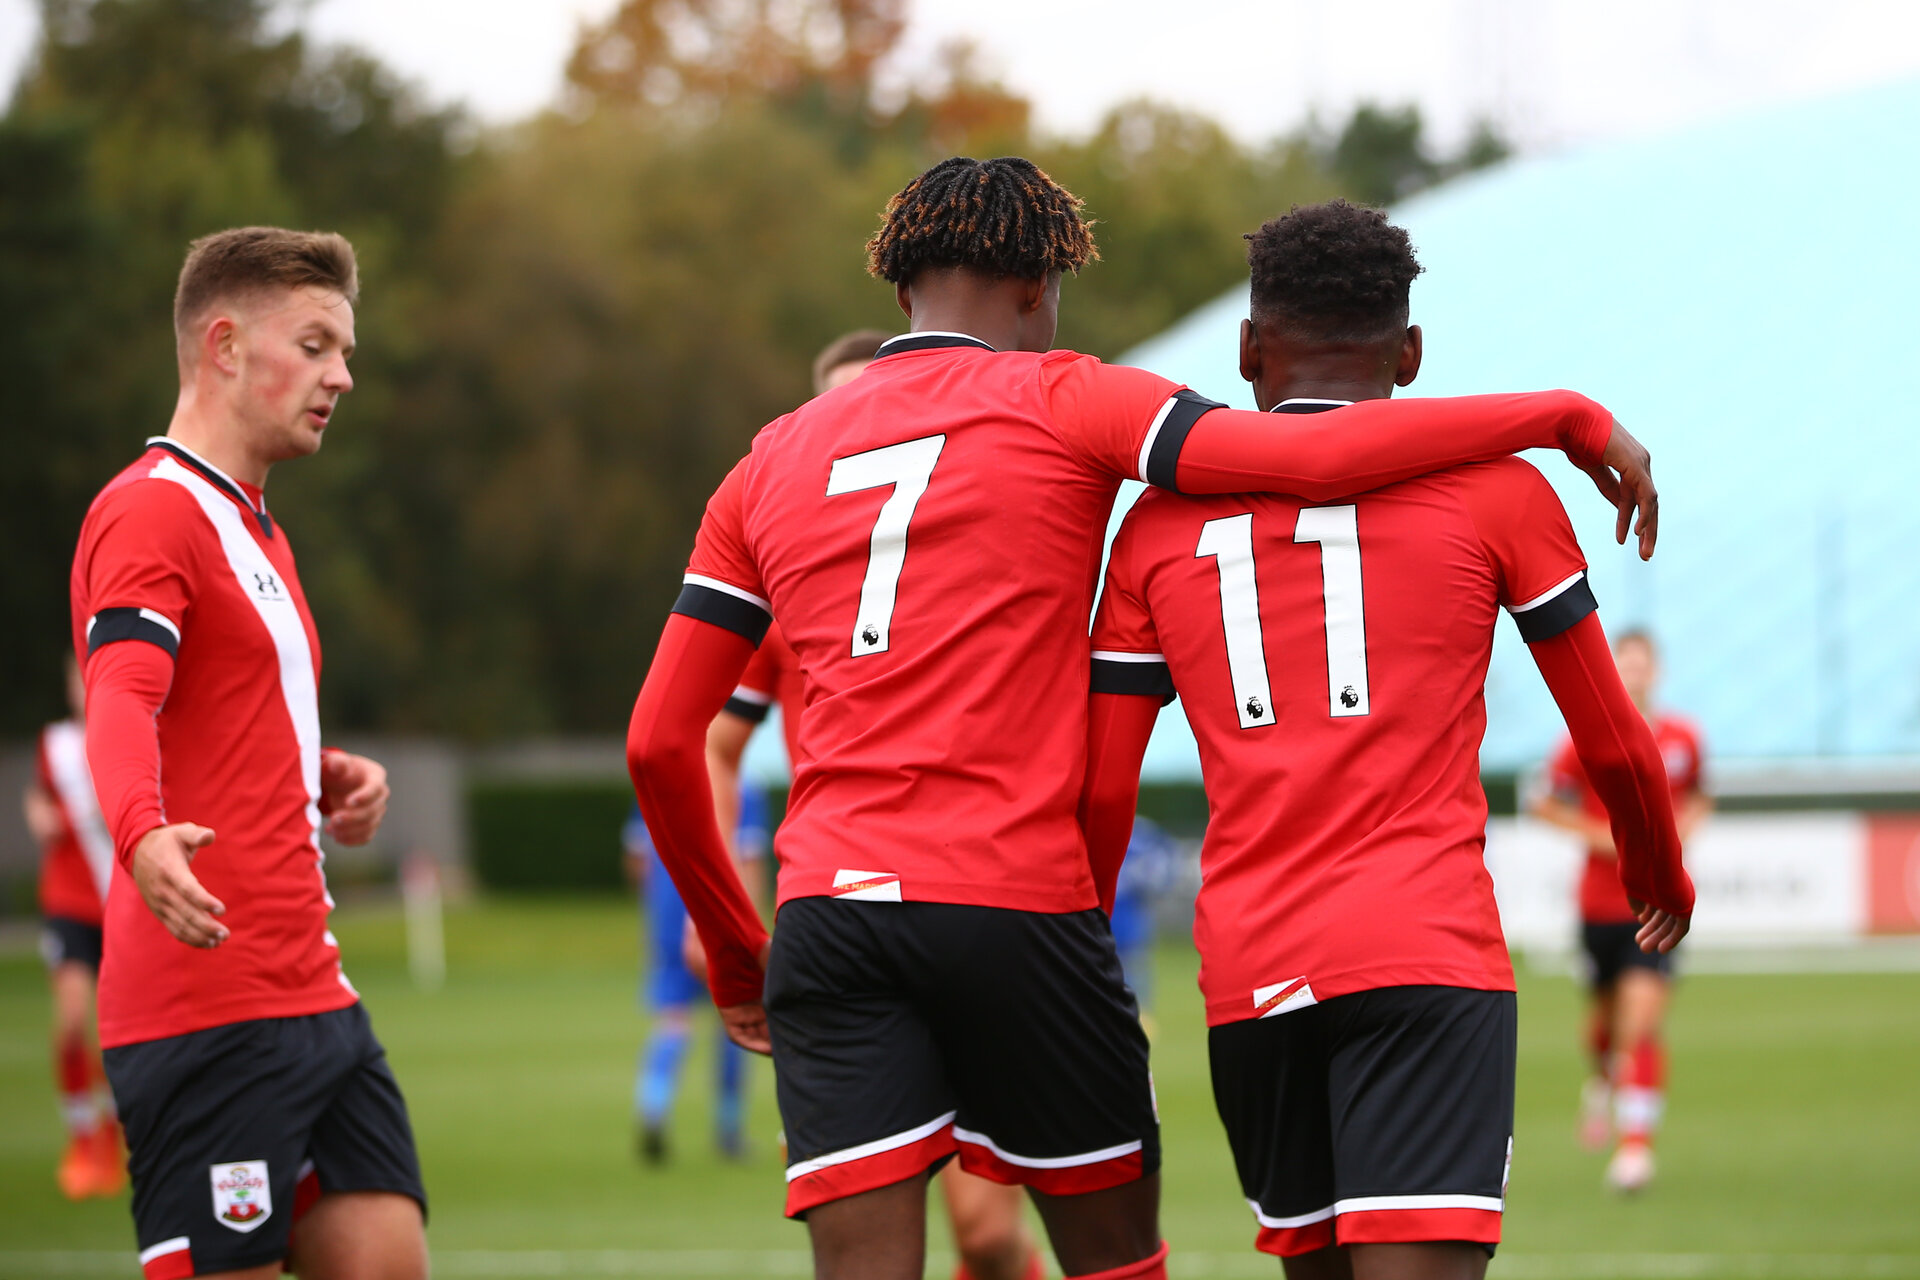 SOUTHAMPTON, ENGLAND - OCTOBER 17: Ramello Mitchell (center) and Kazeem Olaigbe (R) of Southampton during the Premier League U18 match between Southampton U18 and Leicester City at Staplewood Training Ground on October 17, 2020 in London, United Kingdom. (Photo by Isabelle Field/Southampton FC via Getty Images)